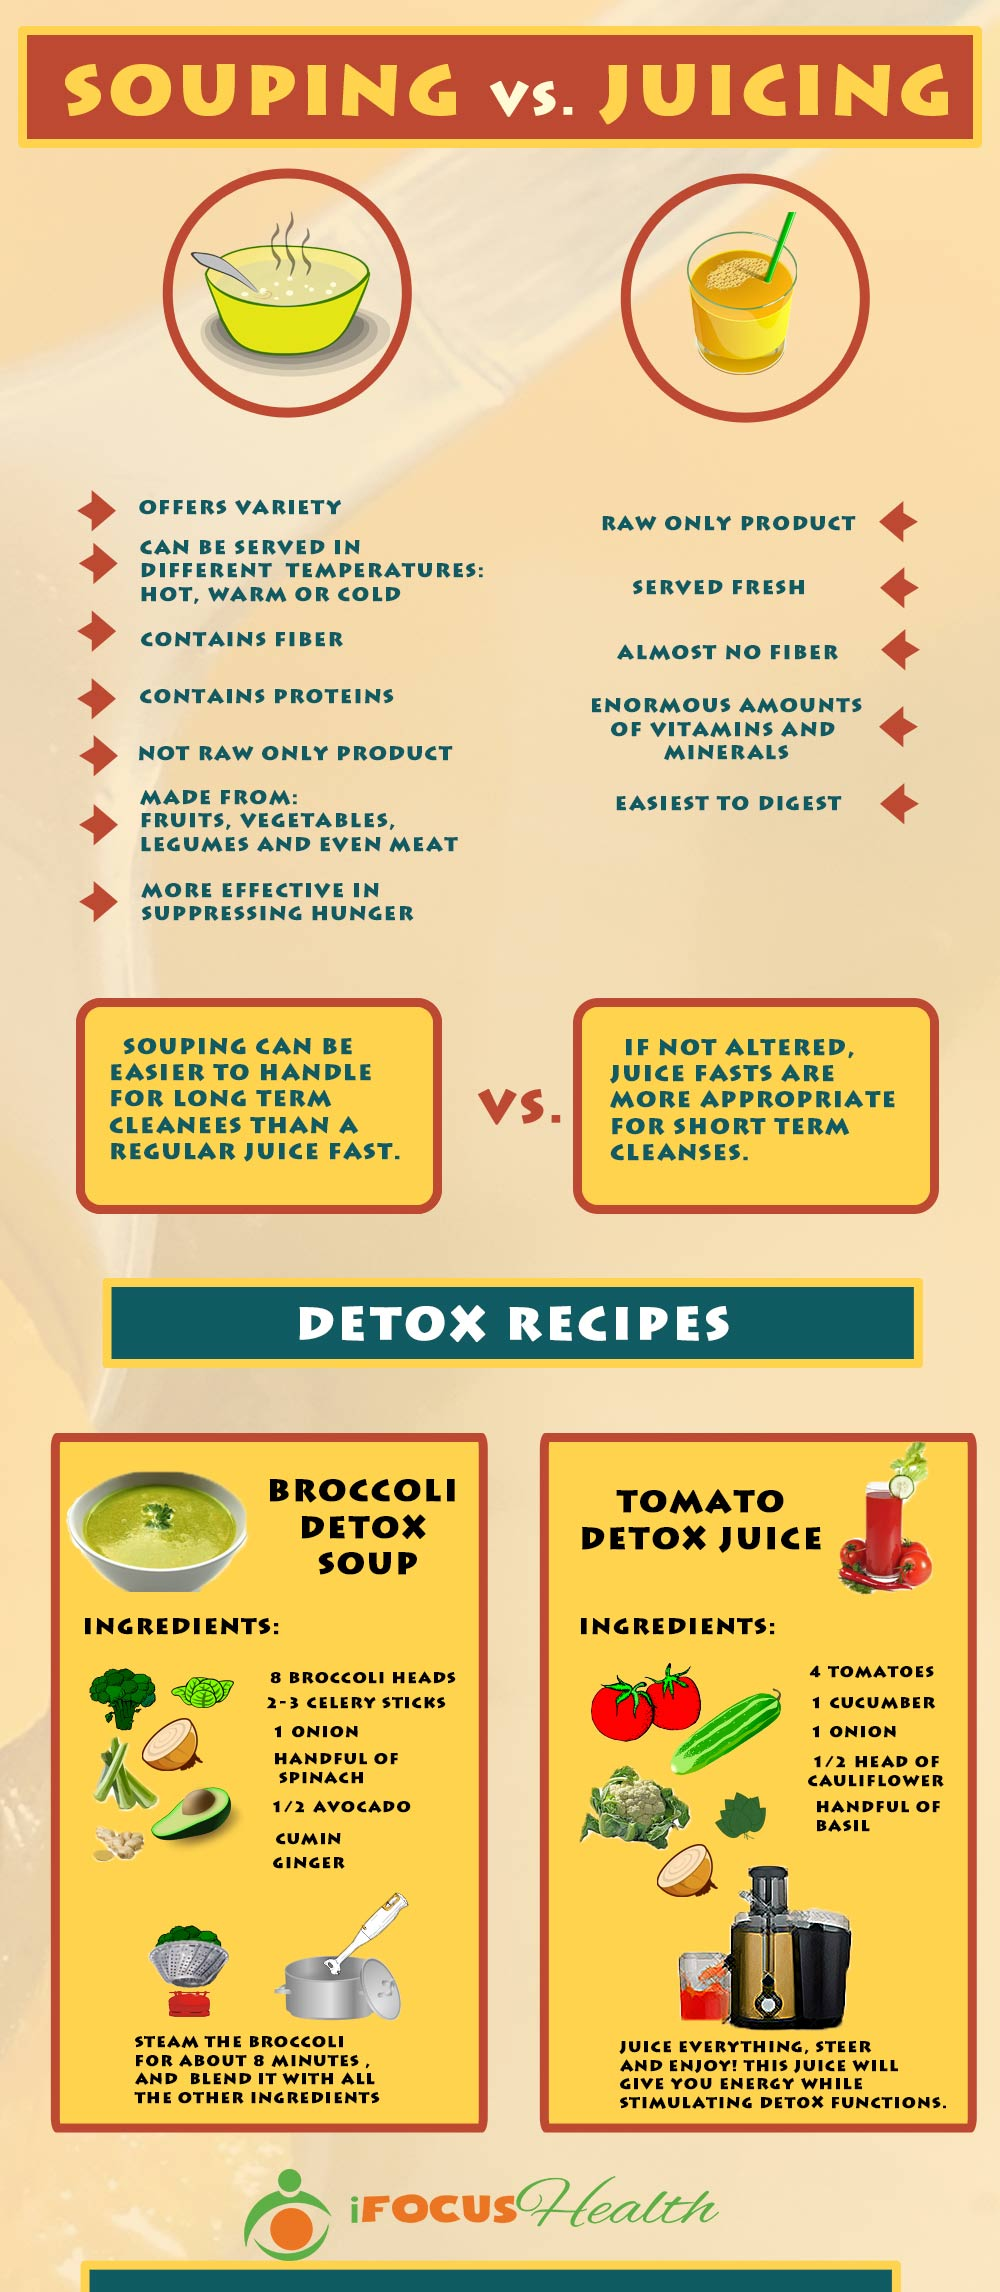 juicing vs souping infographic